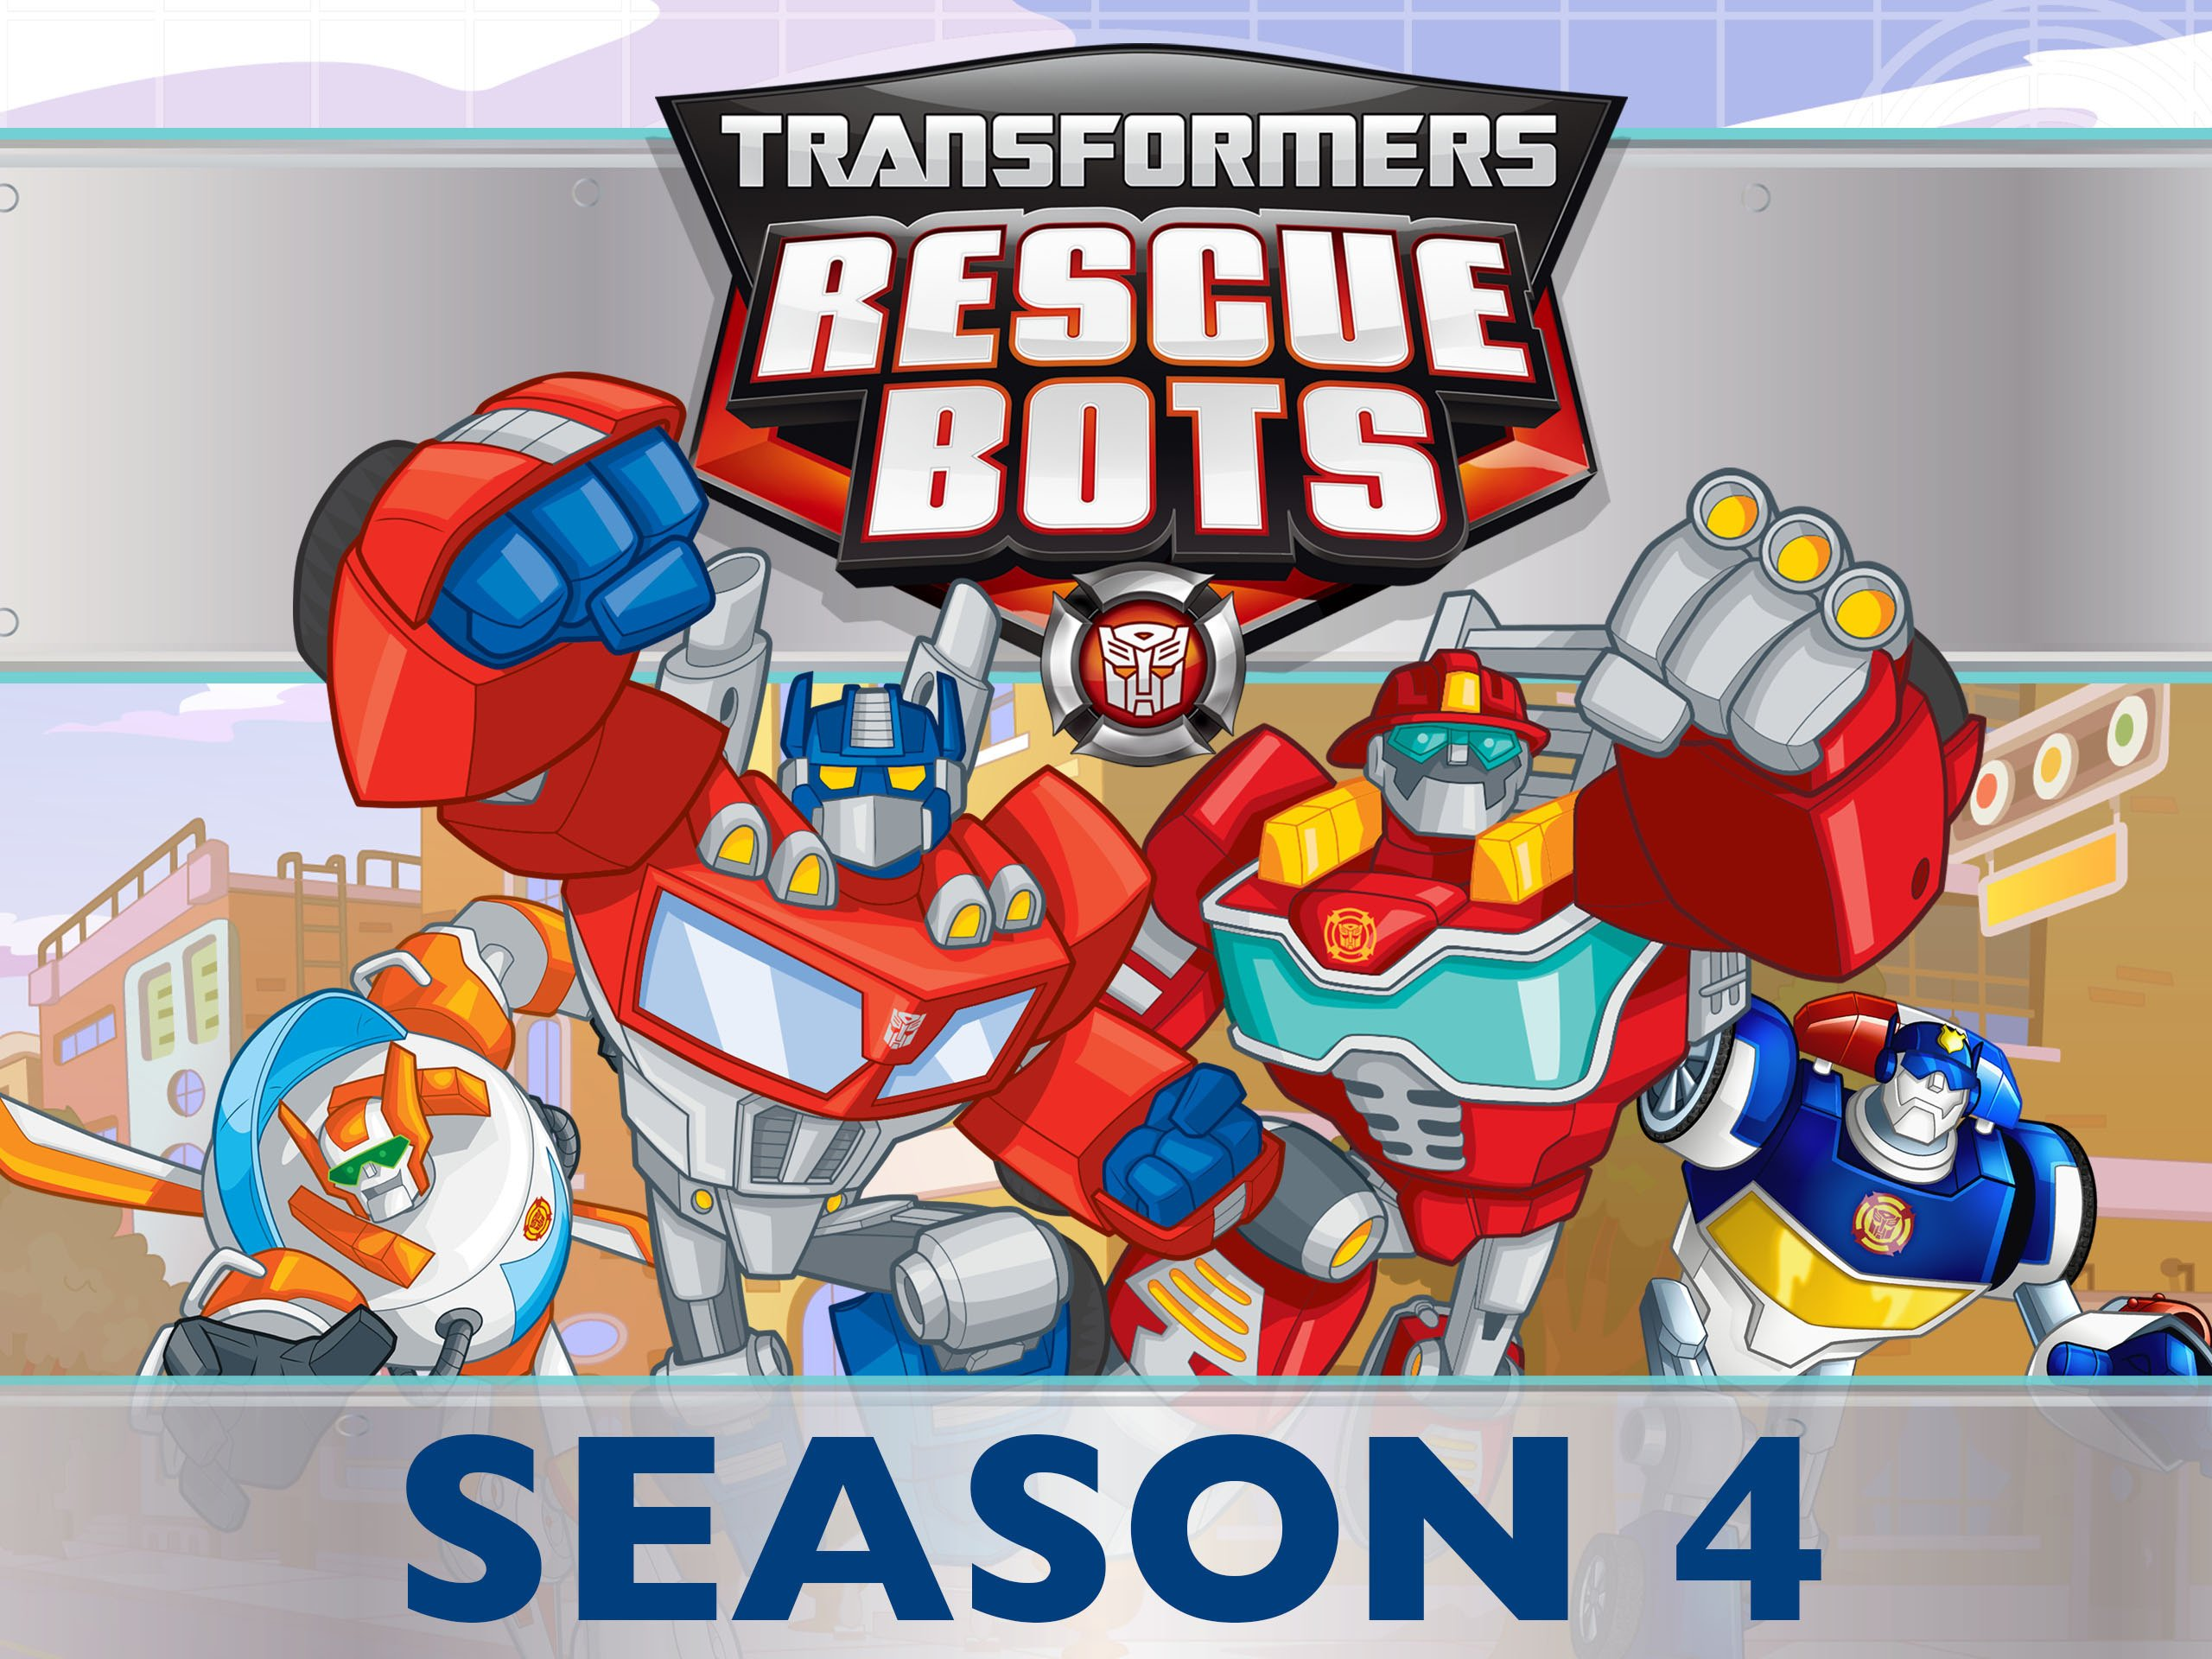 Amazon.com: Transformers Rescue Bots Season 4: Amazon Digital Services LLC